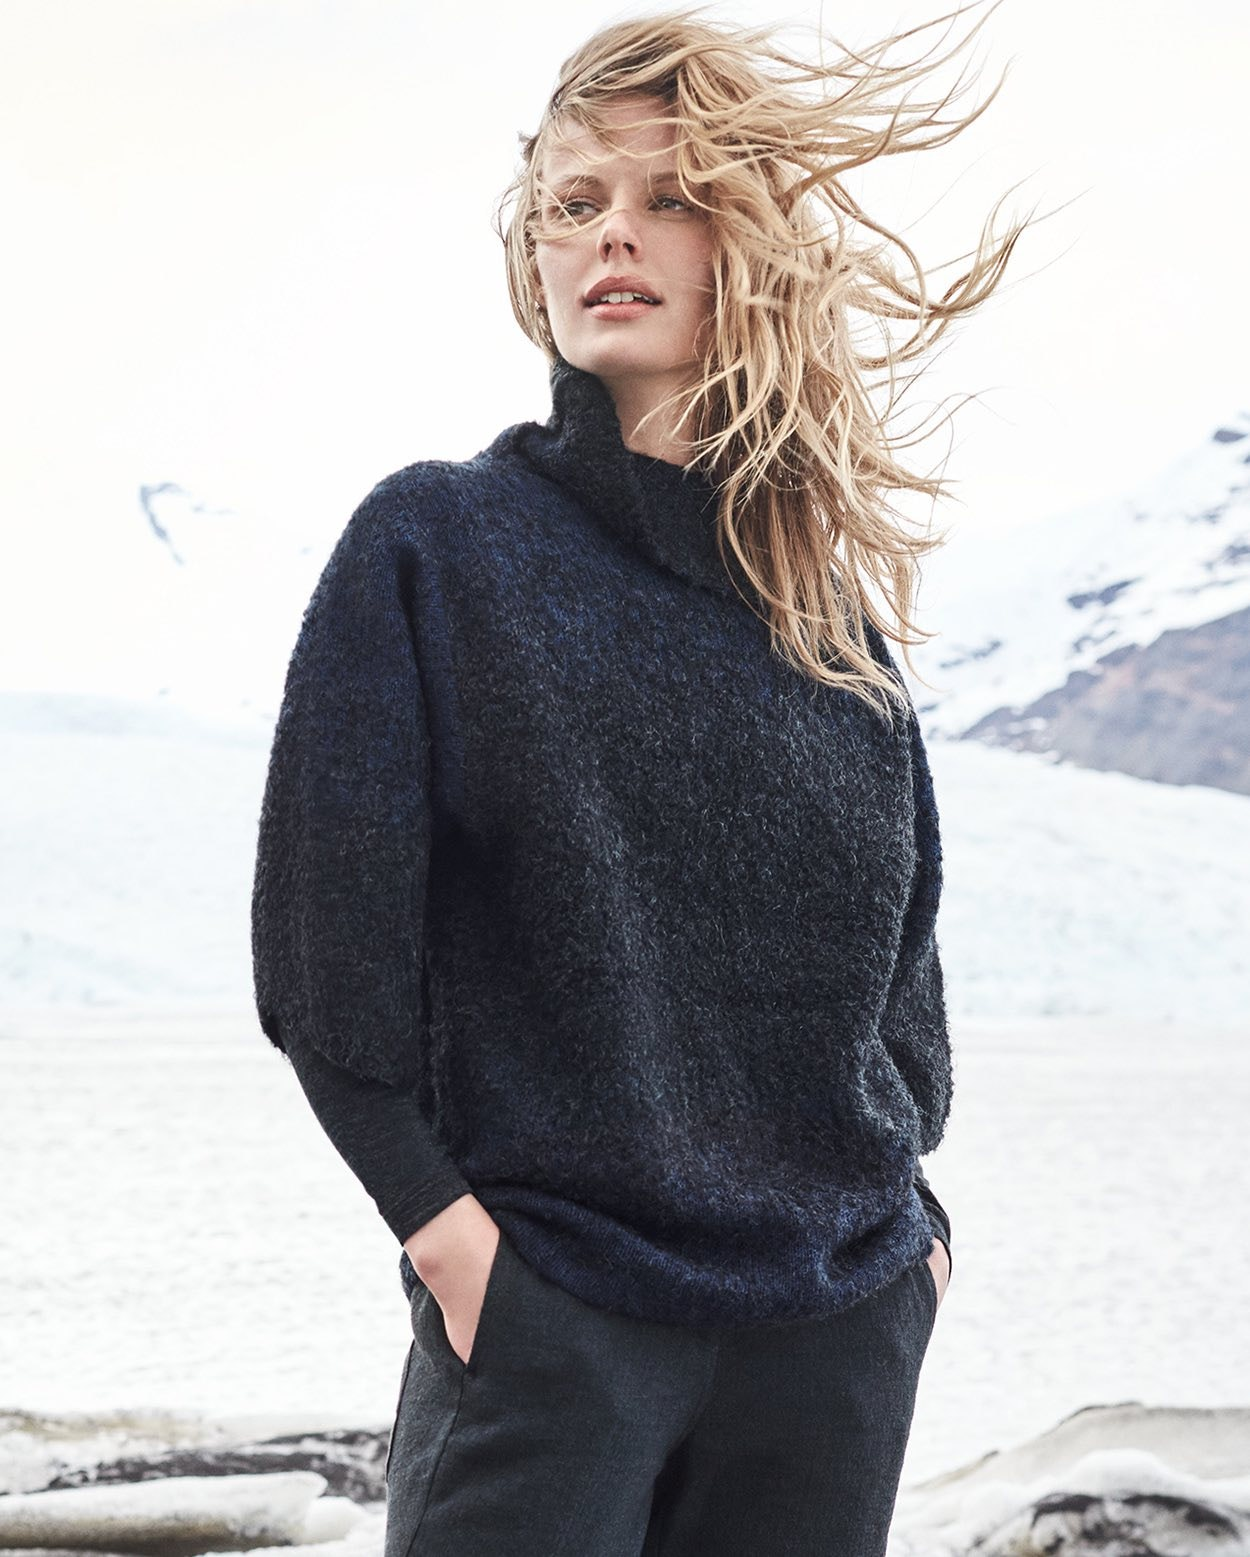 962faac90e03 Poetry - Alpaca and wool ombre-knit sweater